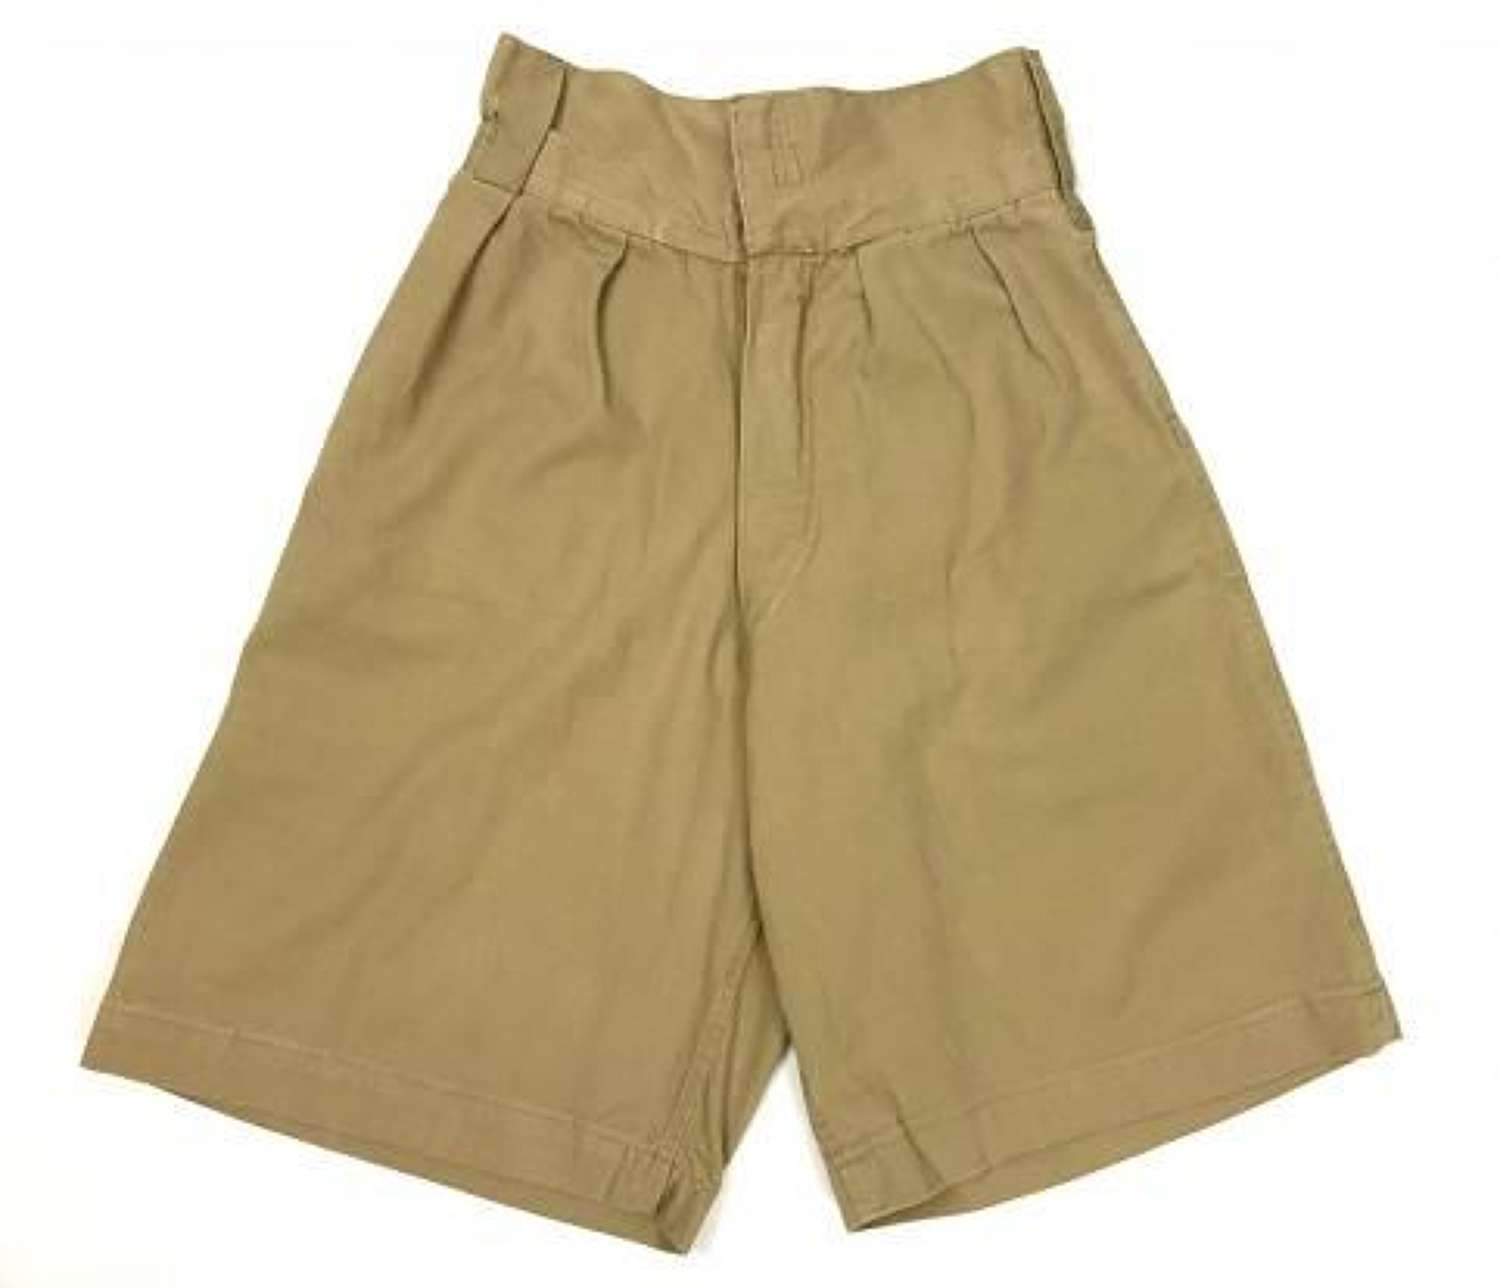 Original 1942 Dated 1941 Pattern Khaki Drill Shorts